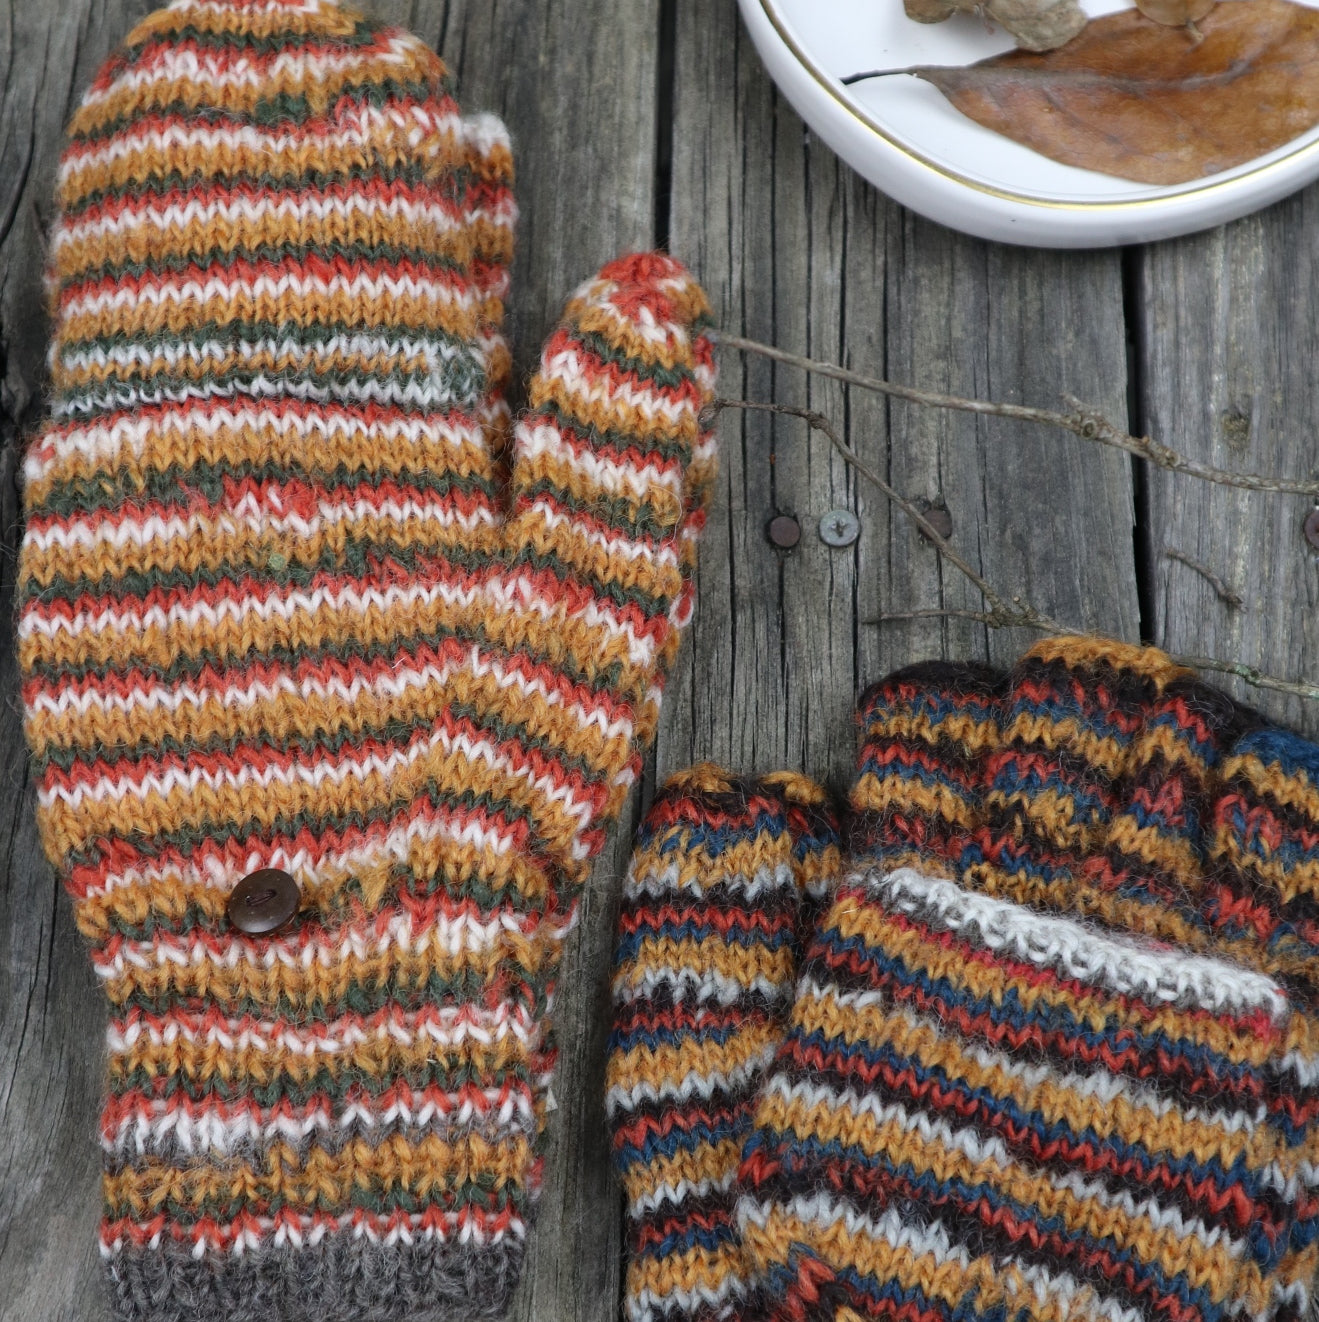 Fair Trade Ethical Adult Fingerless Gloves with Cap in Striped Design Grey and Orange